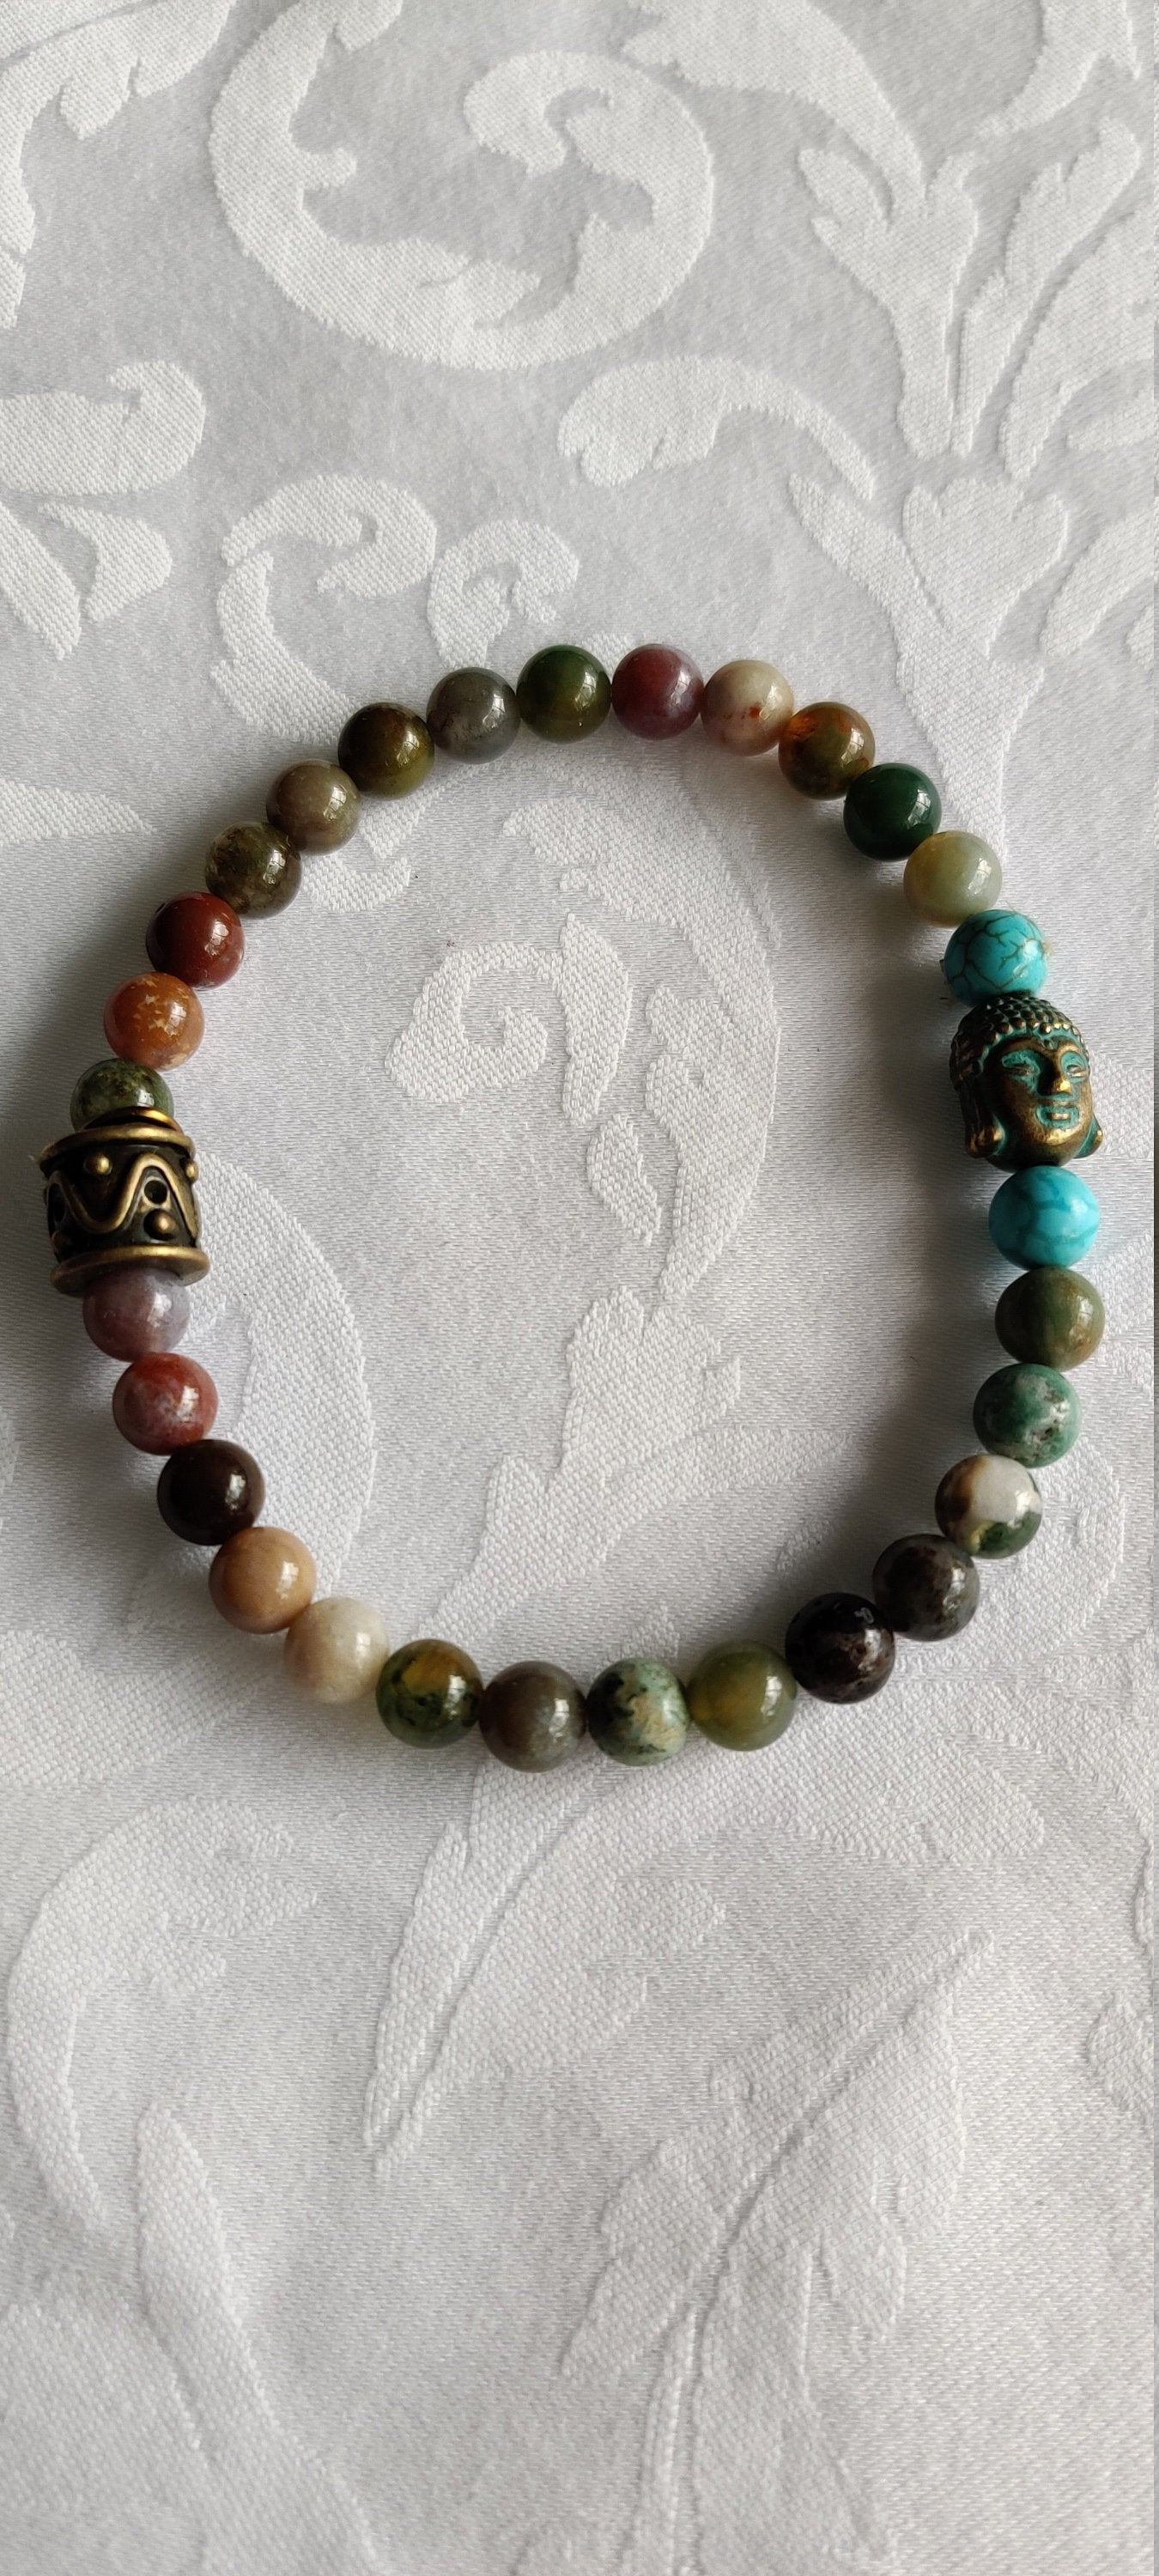 Gifts for her, Yoga jewelry, Healing beads, Agate and Turquois, Mala bracelet, Stretch Cord